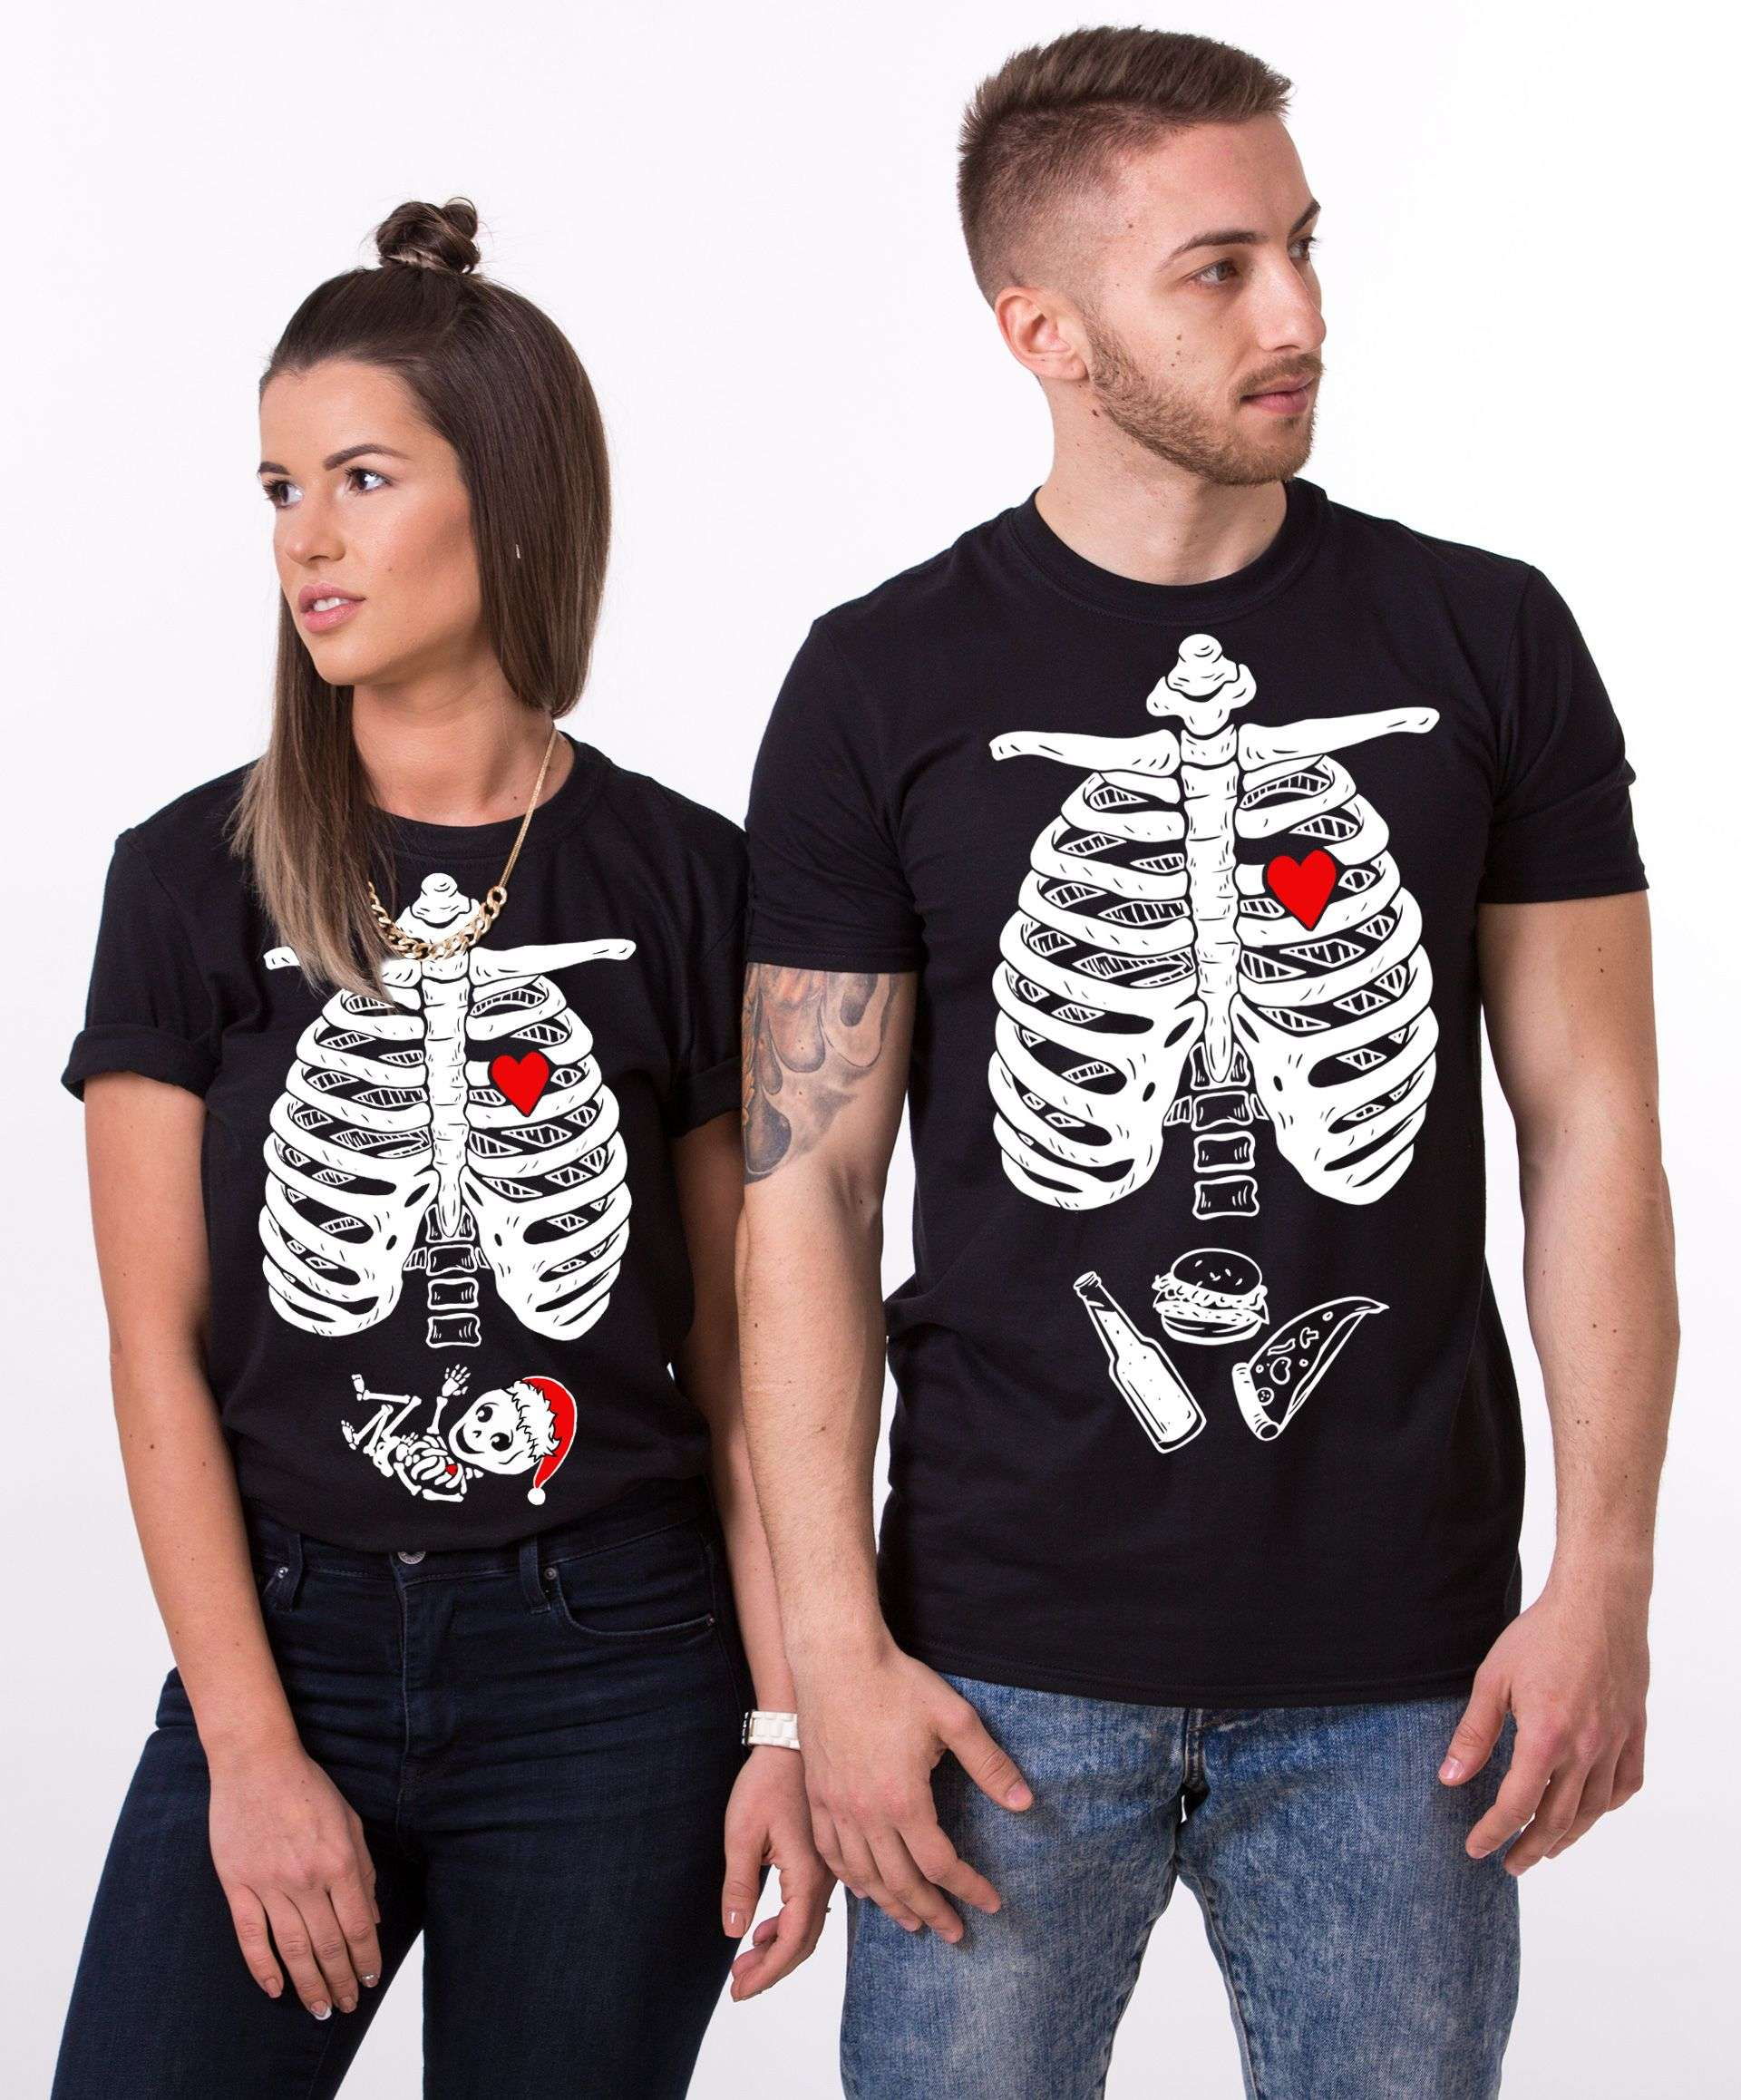 Maternity Christmas Shirt.Christmas Skeleton Shirts Maternity Shirt Matching Couples Shirts